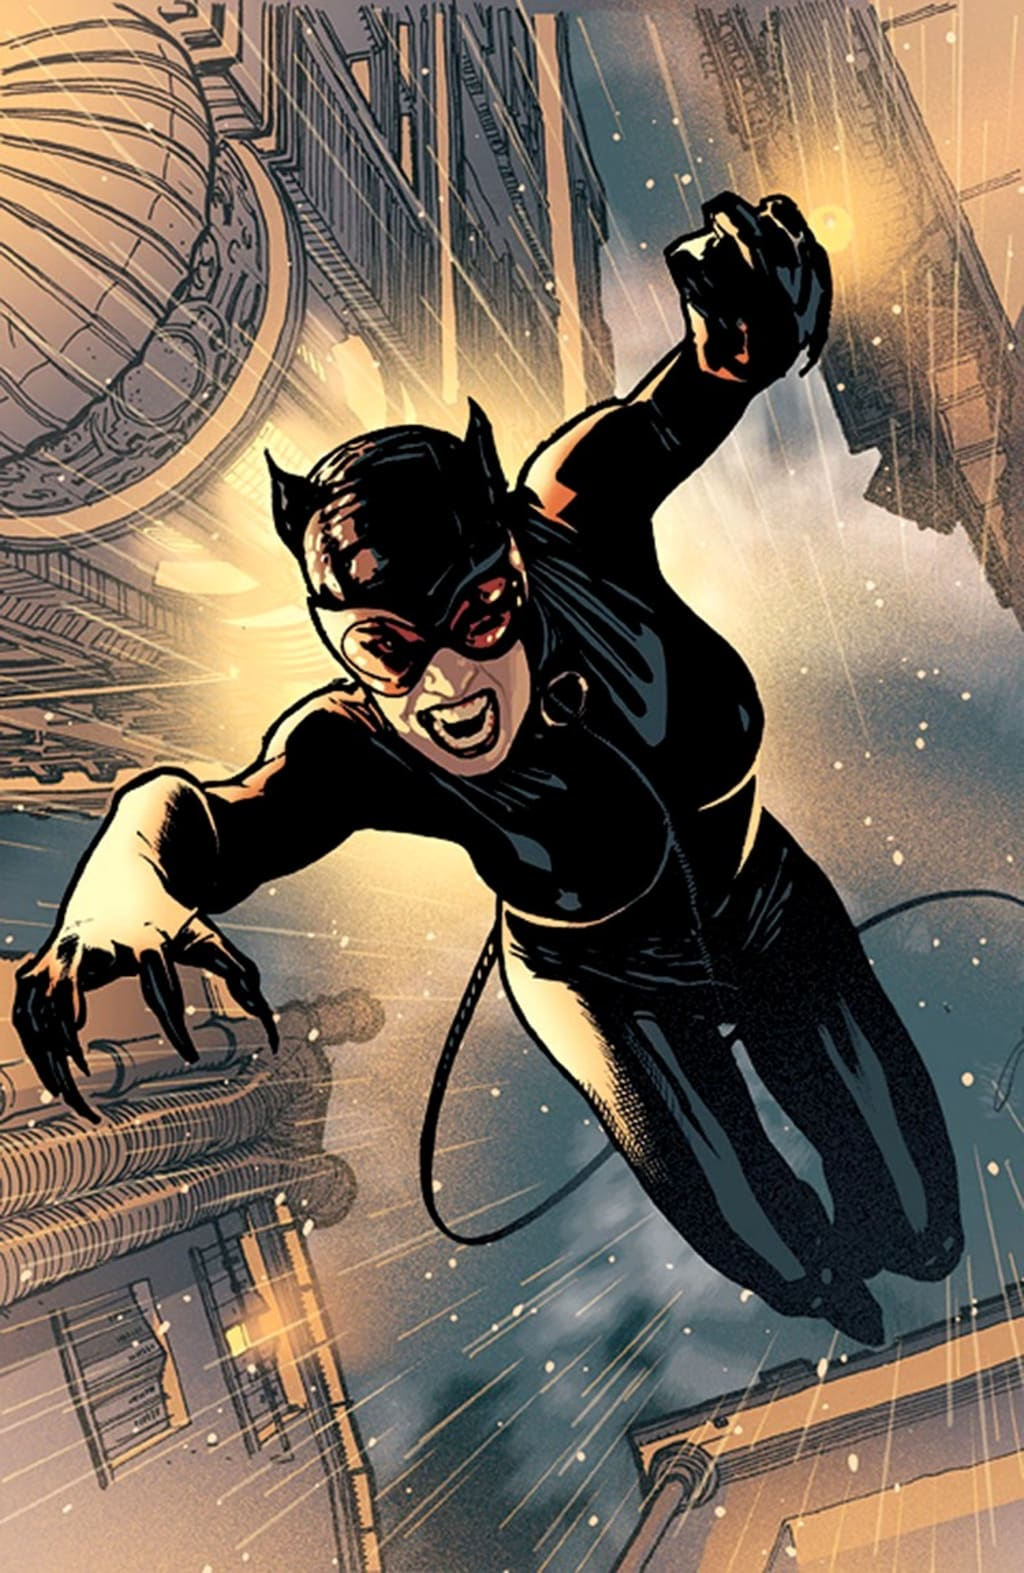 How To Build Catwoman in The Pathfinder RPG